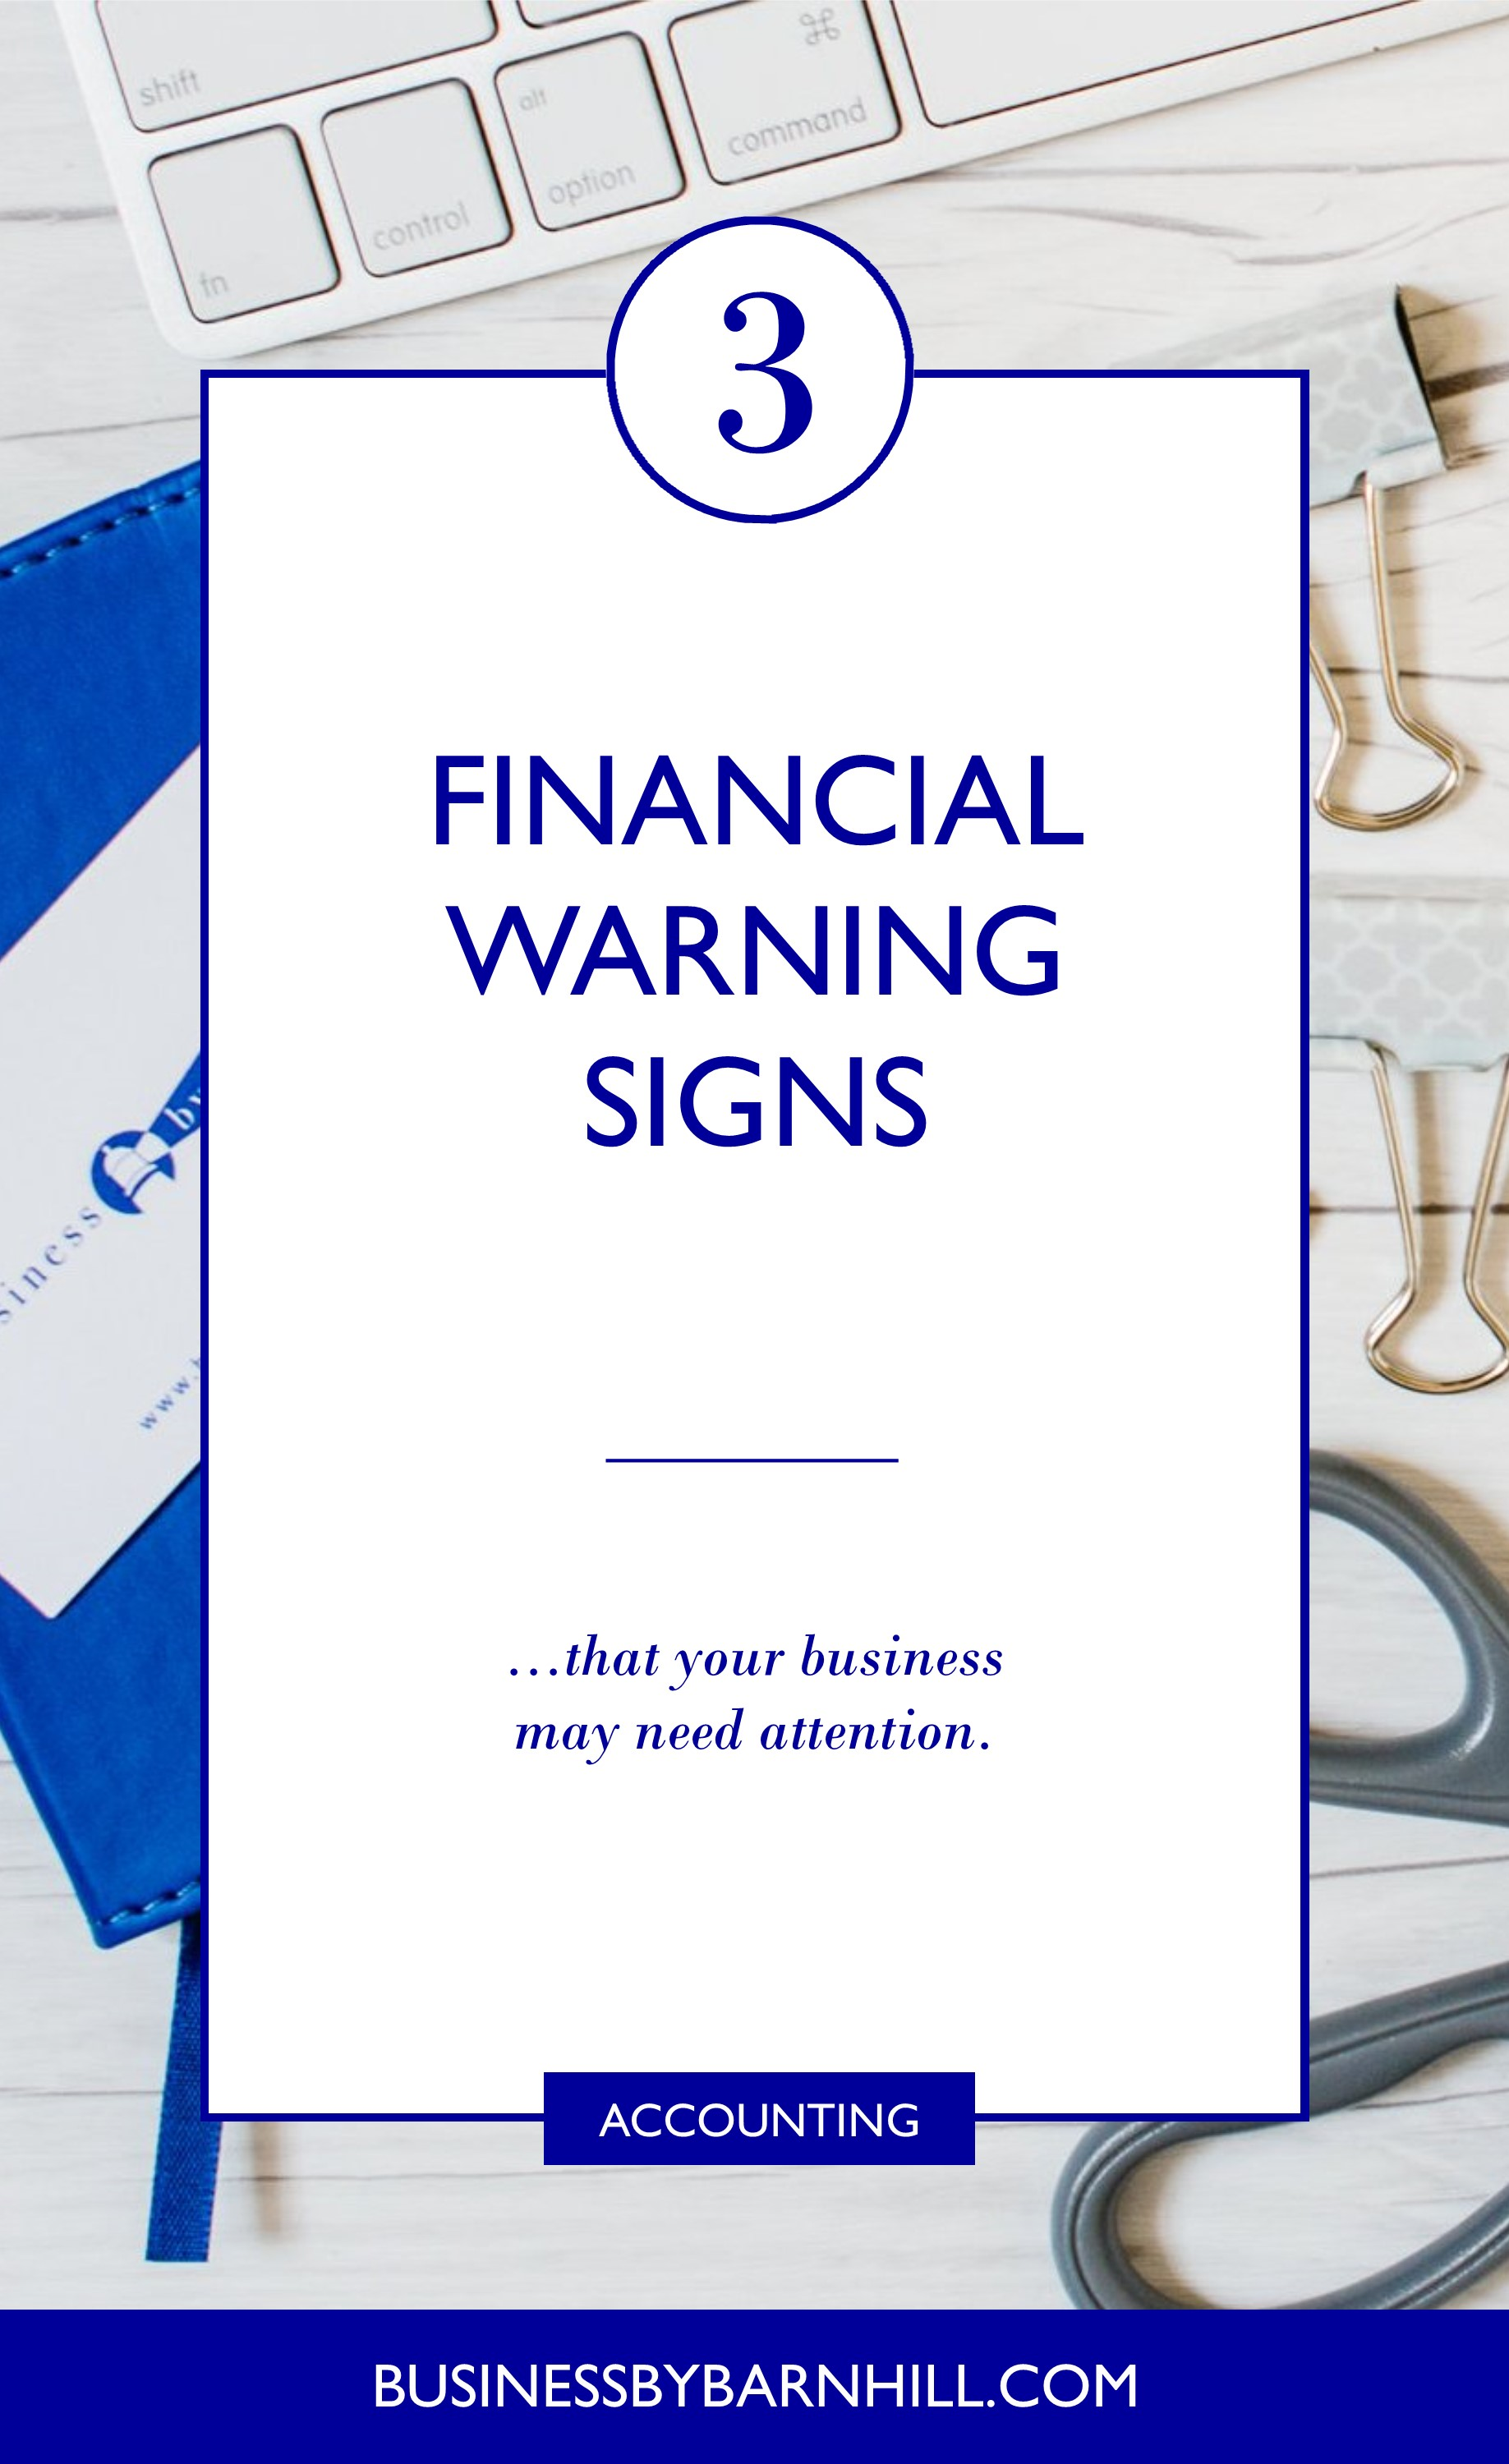 business by barnhill pinterest 3 financial warning signs that your business may need your attention 2.jpg